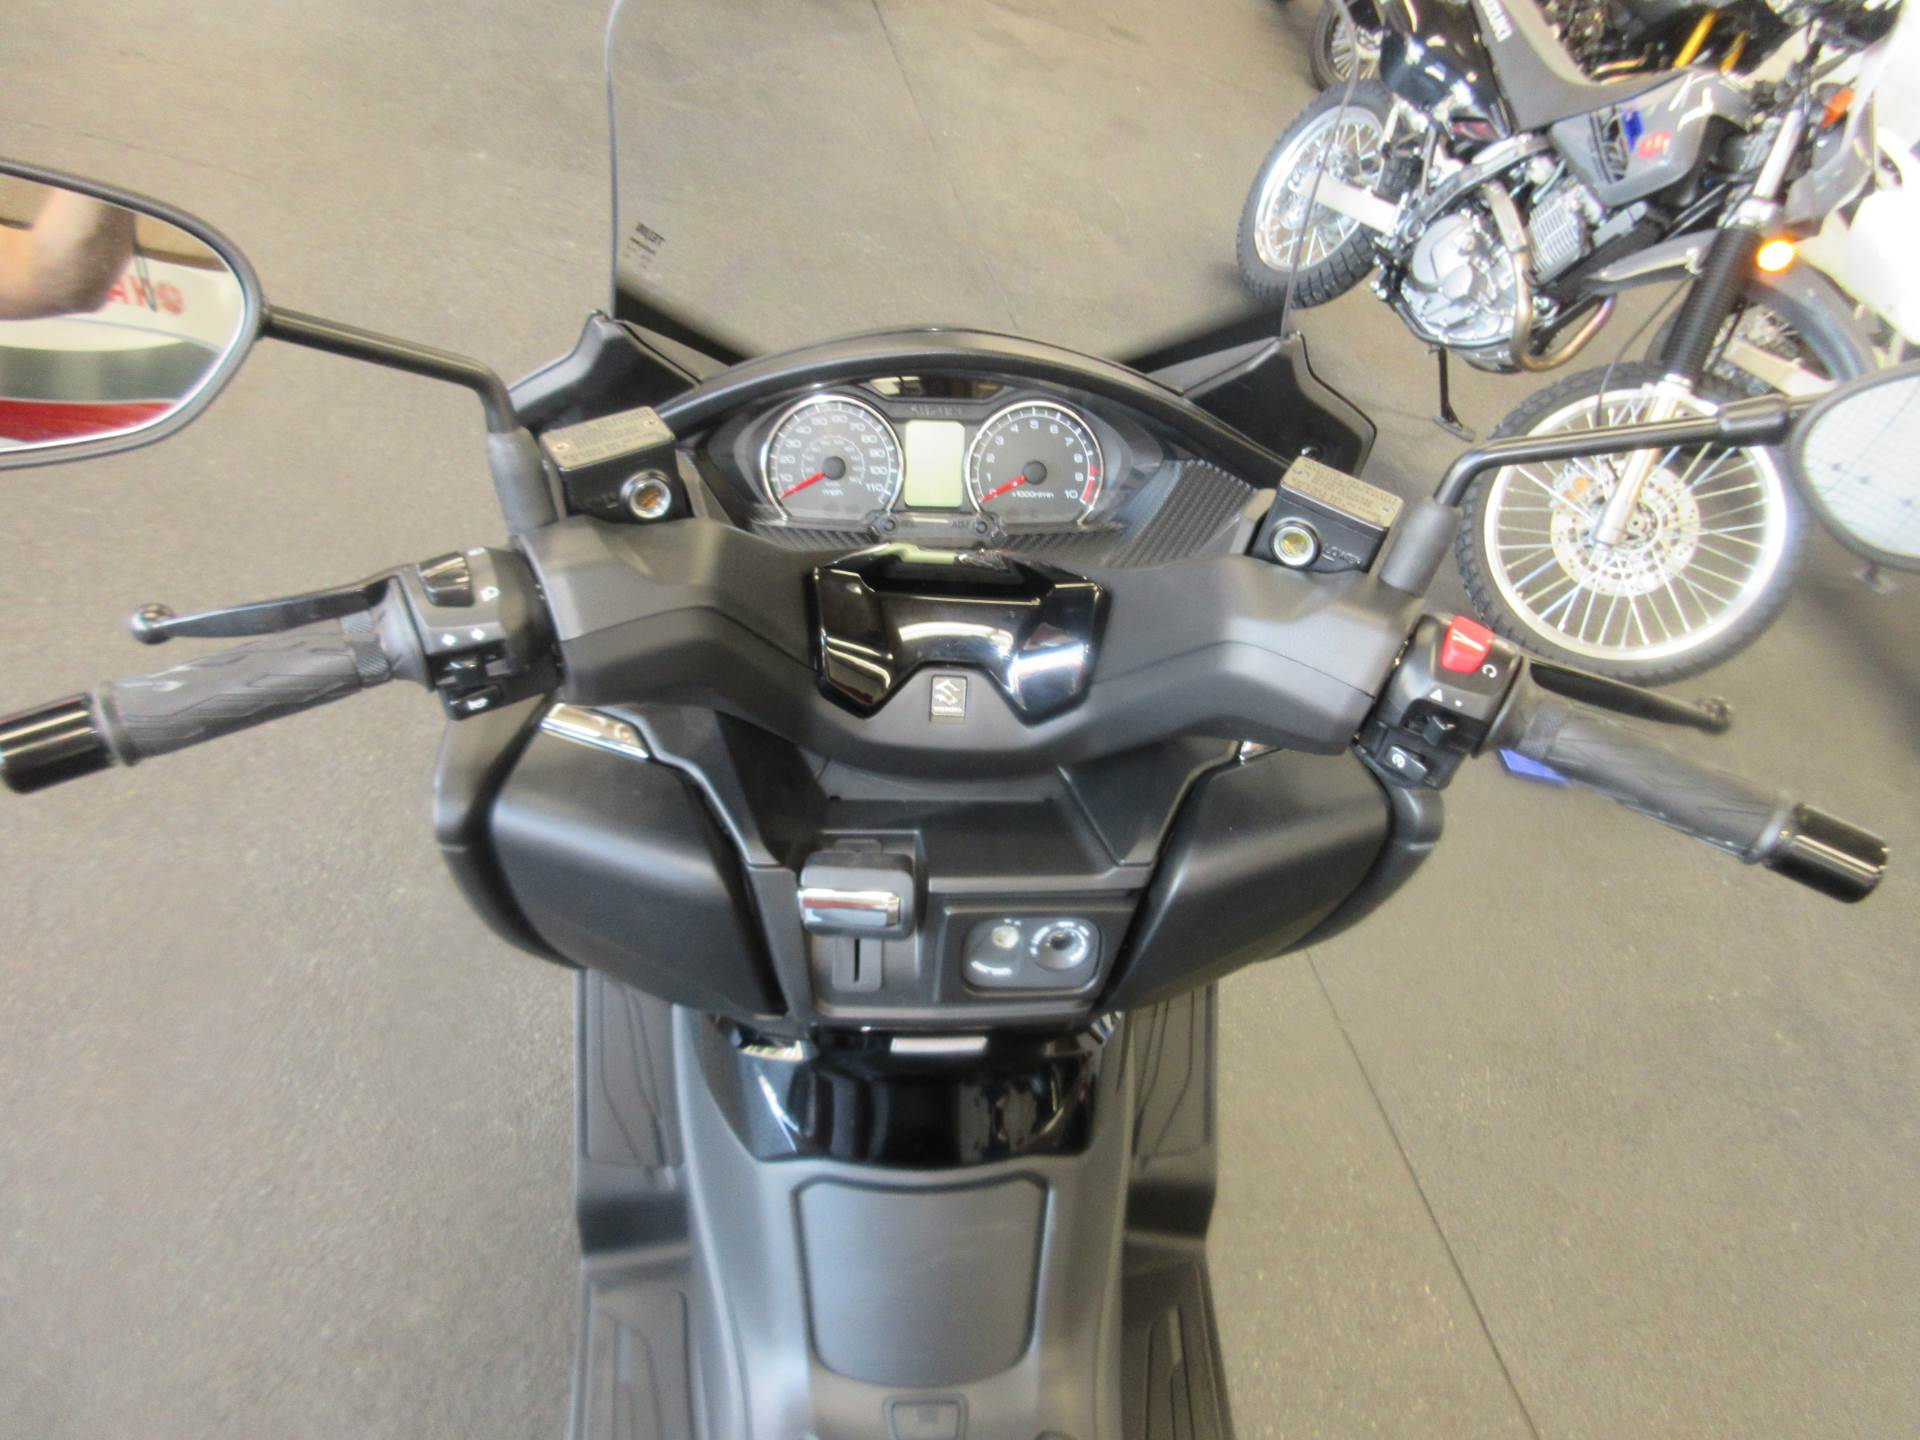 2020 Suzuki Burgman 400 in Sacramento, California - Photo 5